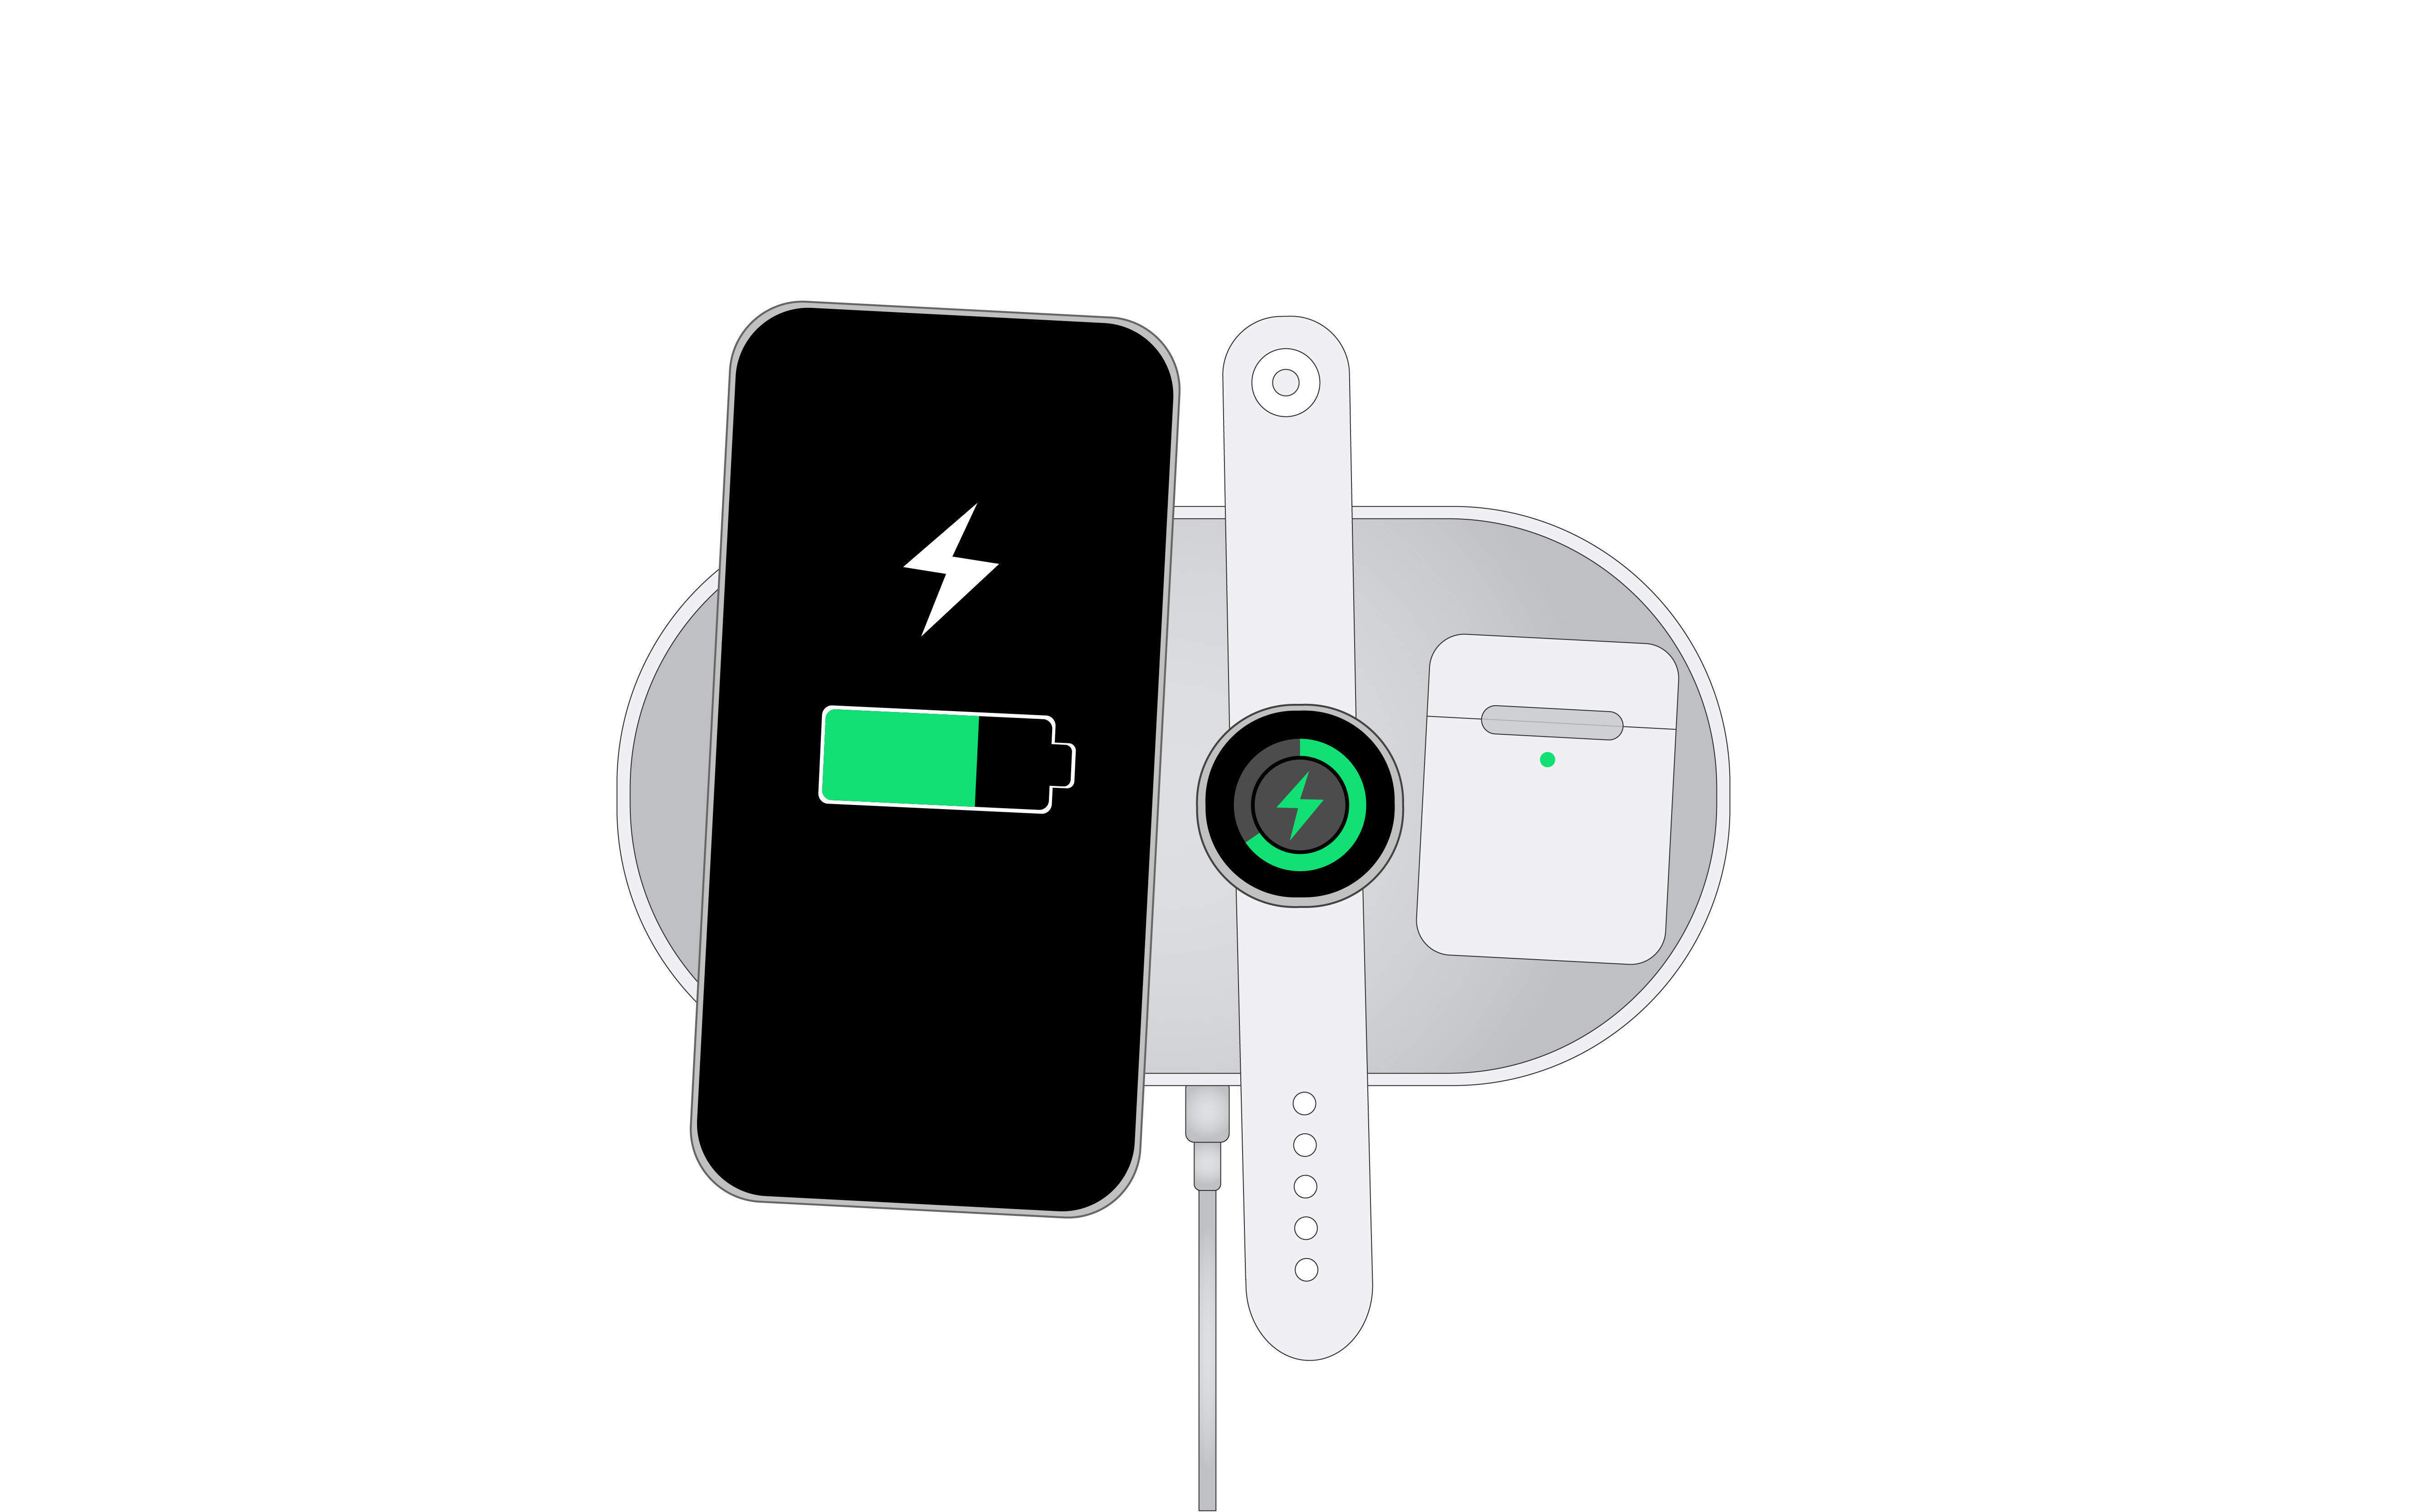 No AirPower release date, but Apple commits to wireless charging